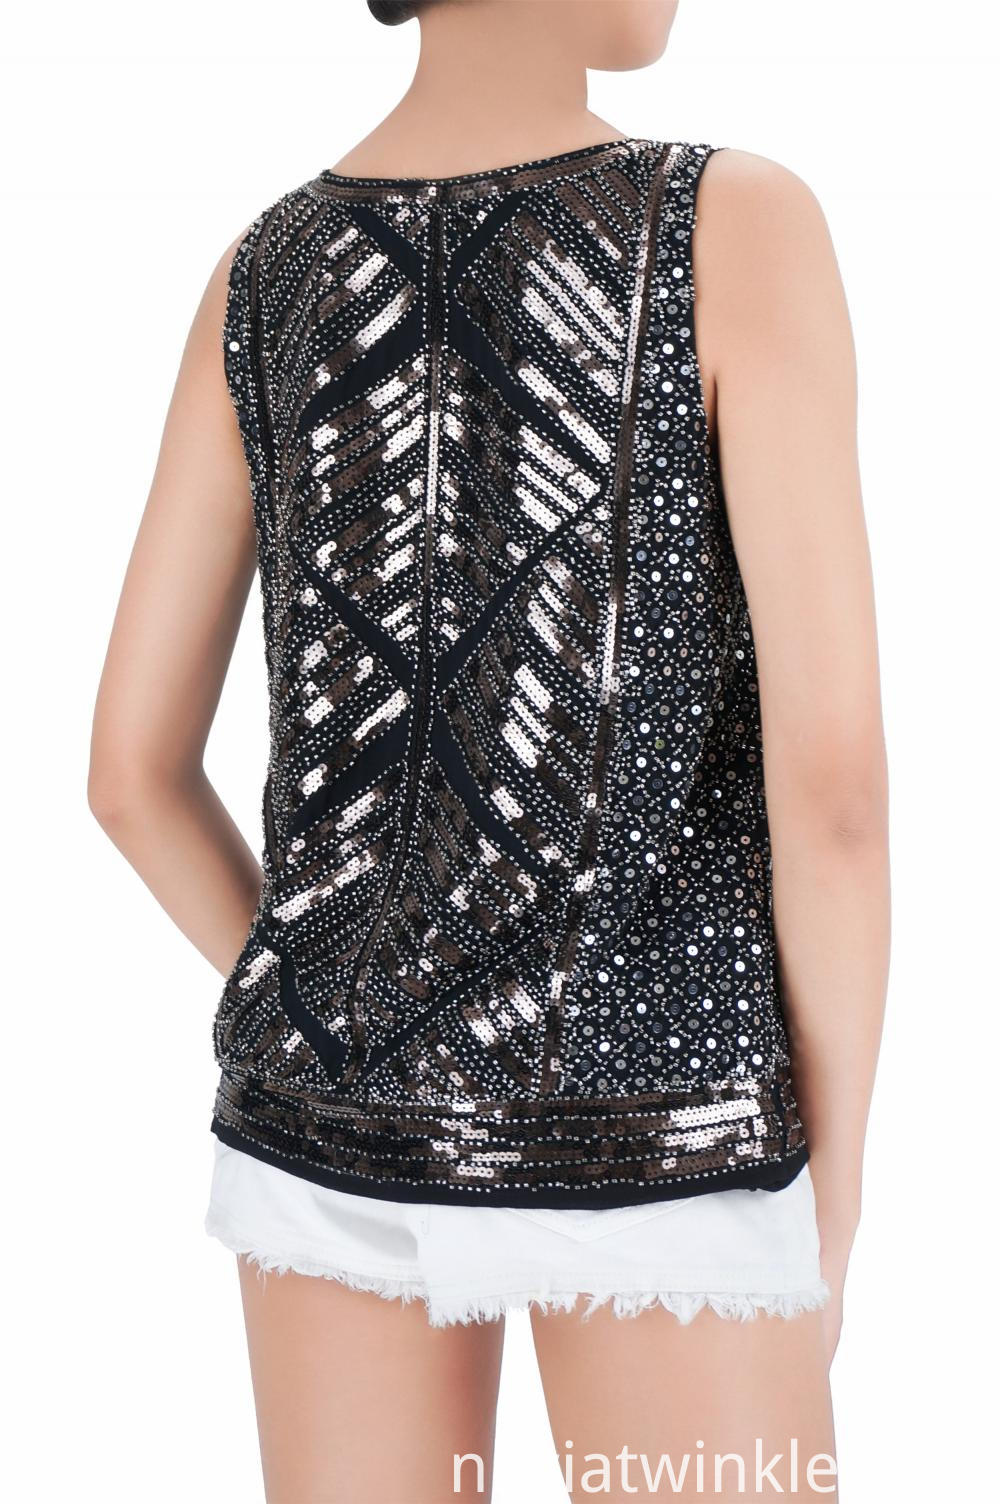 Girls Embroidered Sequin Tank Tops